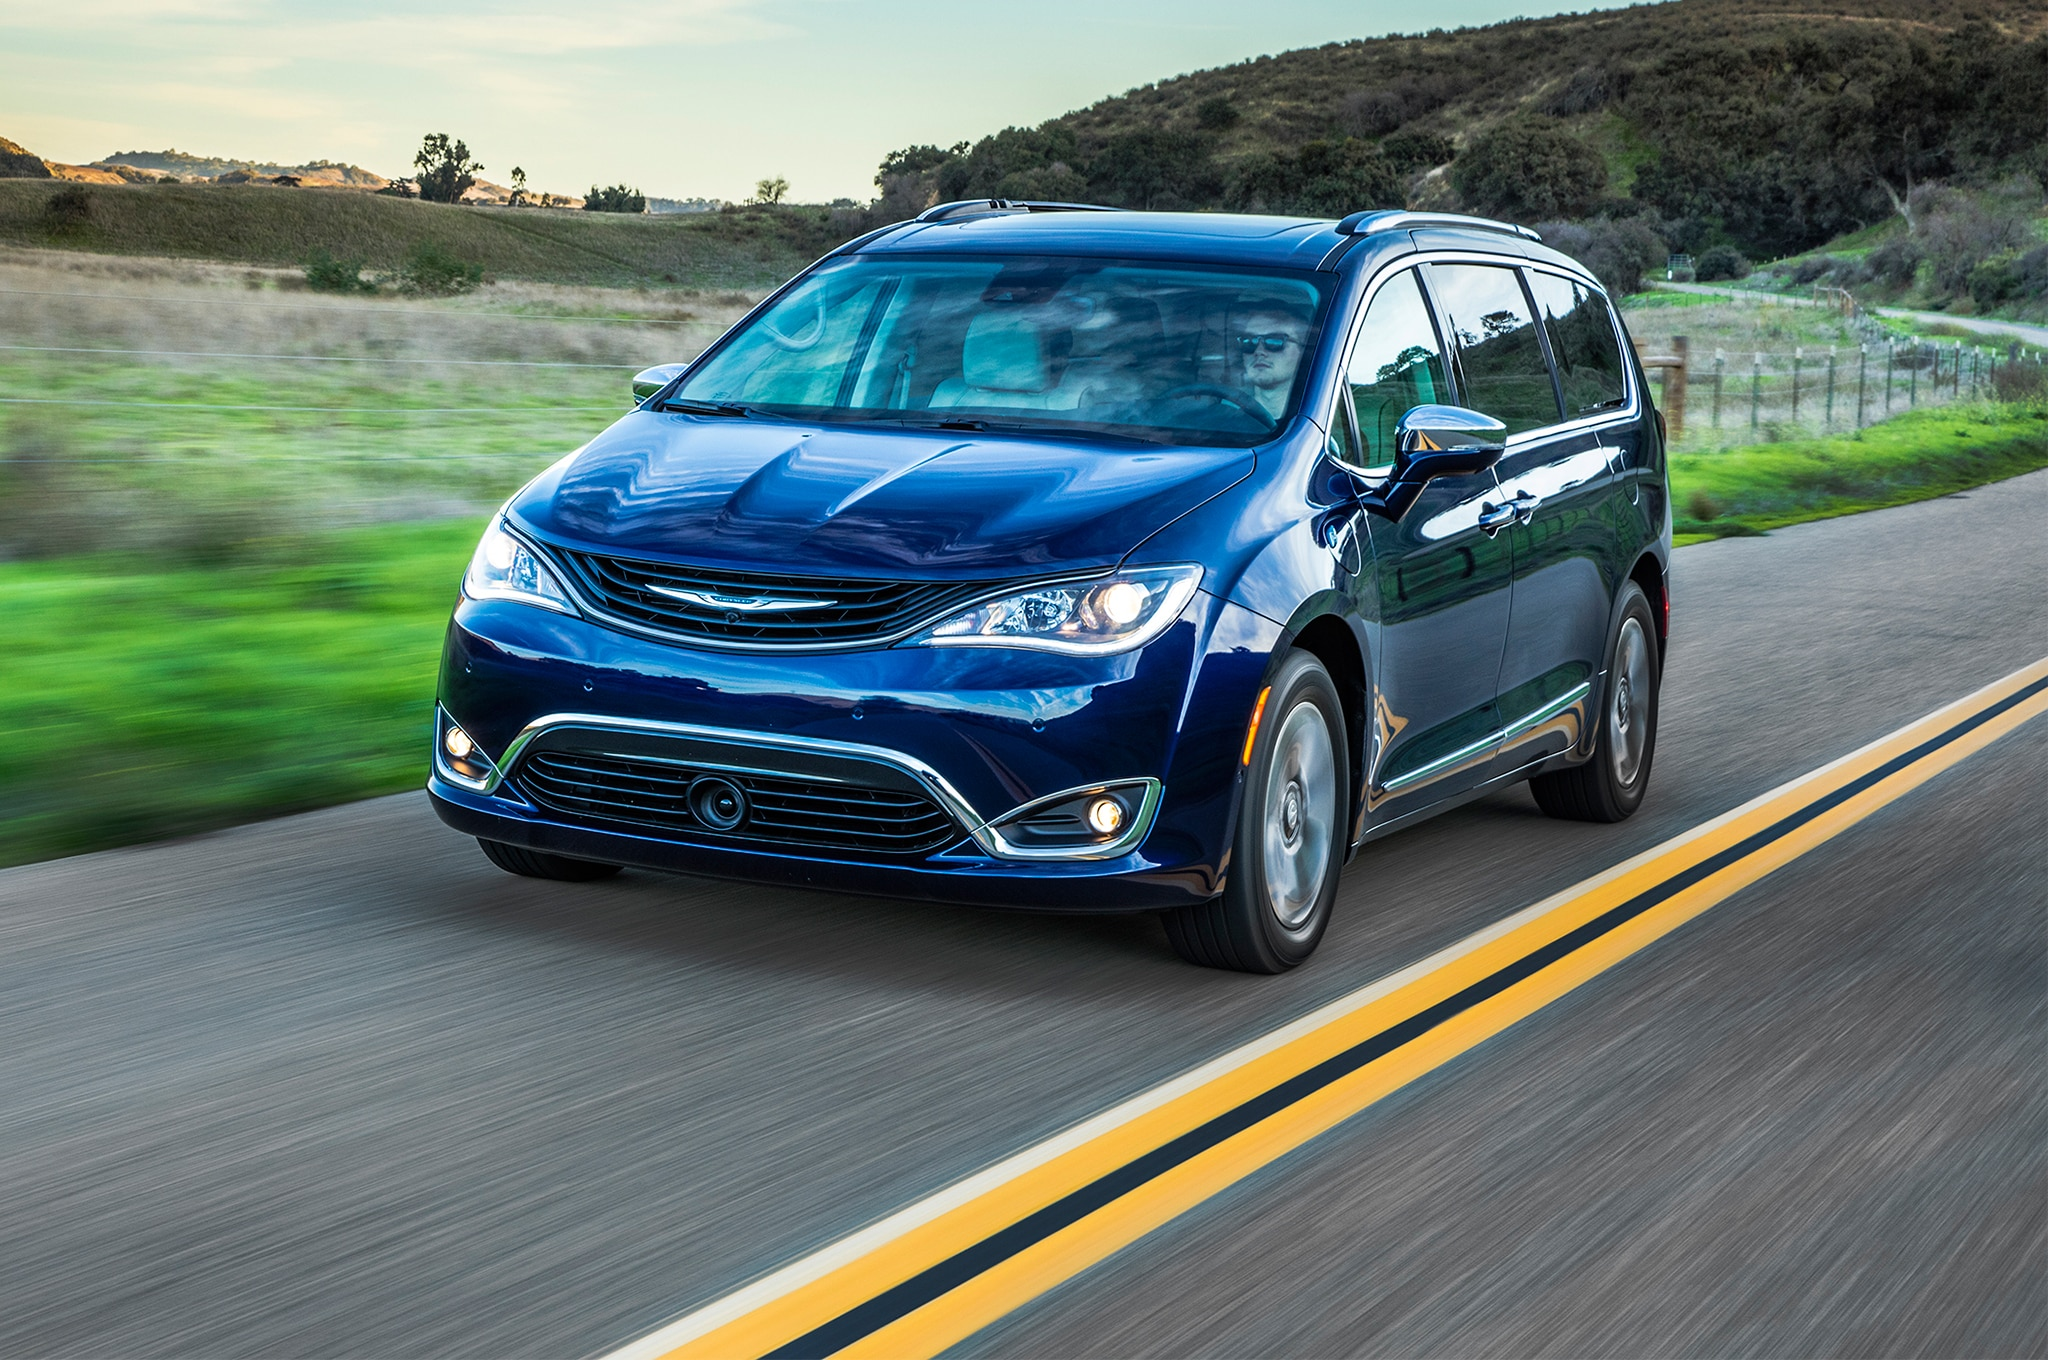 2017 chrysler pacifica hybrid first drive automobile autos post. Black Bedroom Furniture Sets. Home Design Ideas